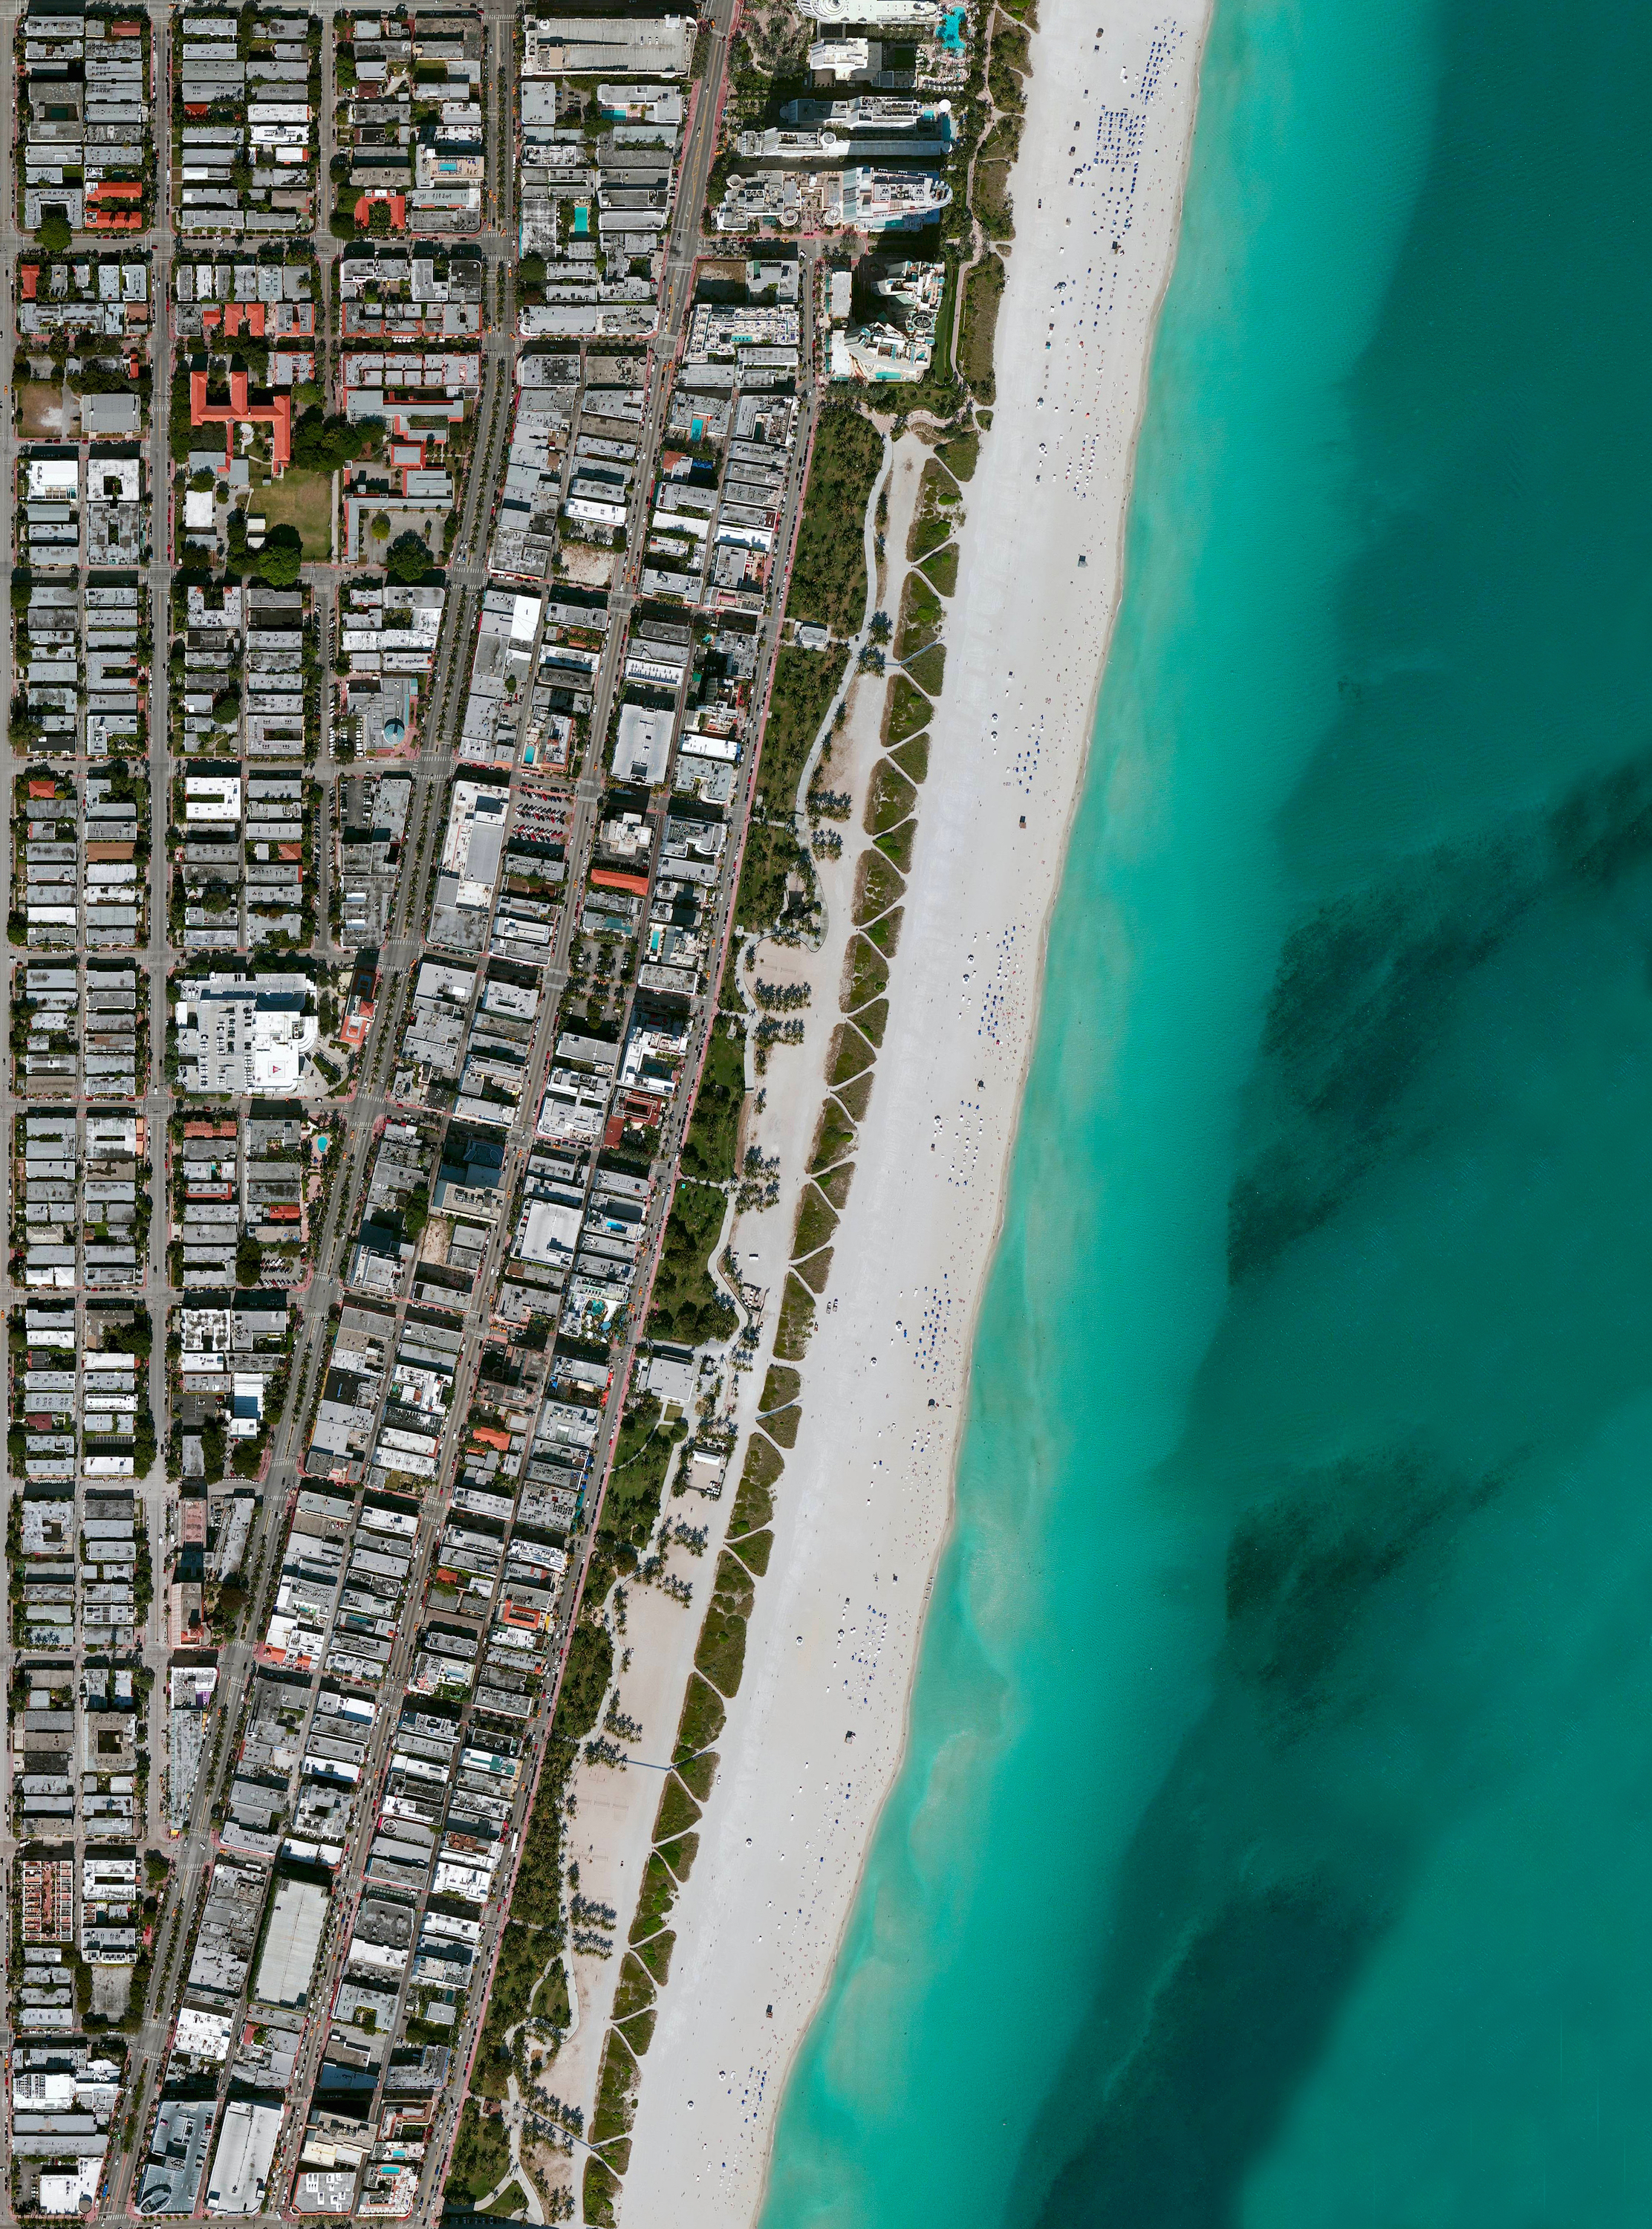 5/27/2016  Miami Beach  Miami Beach, Florida, USA  25.783742, -80.128644    Umbrellas and beachgoers dot the sands of Miami Beach, Florida, USA. This area is one of the most popular tourist destinations in the country, attracting nearly 15 million visitors each year. The #summer season officially starts this weekend with Memorial Day here in the United States, but I wish everyone a few days of rest and adventure wherever you are around the world!